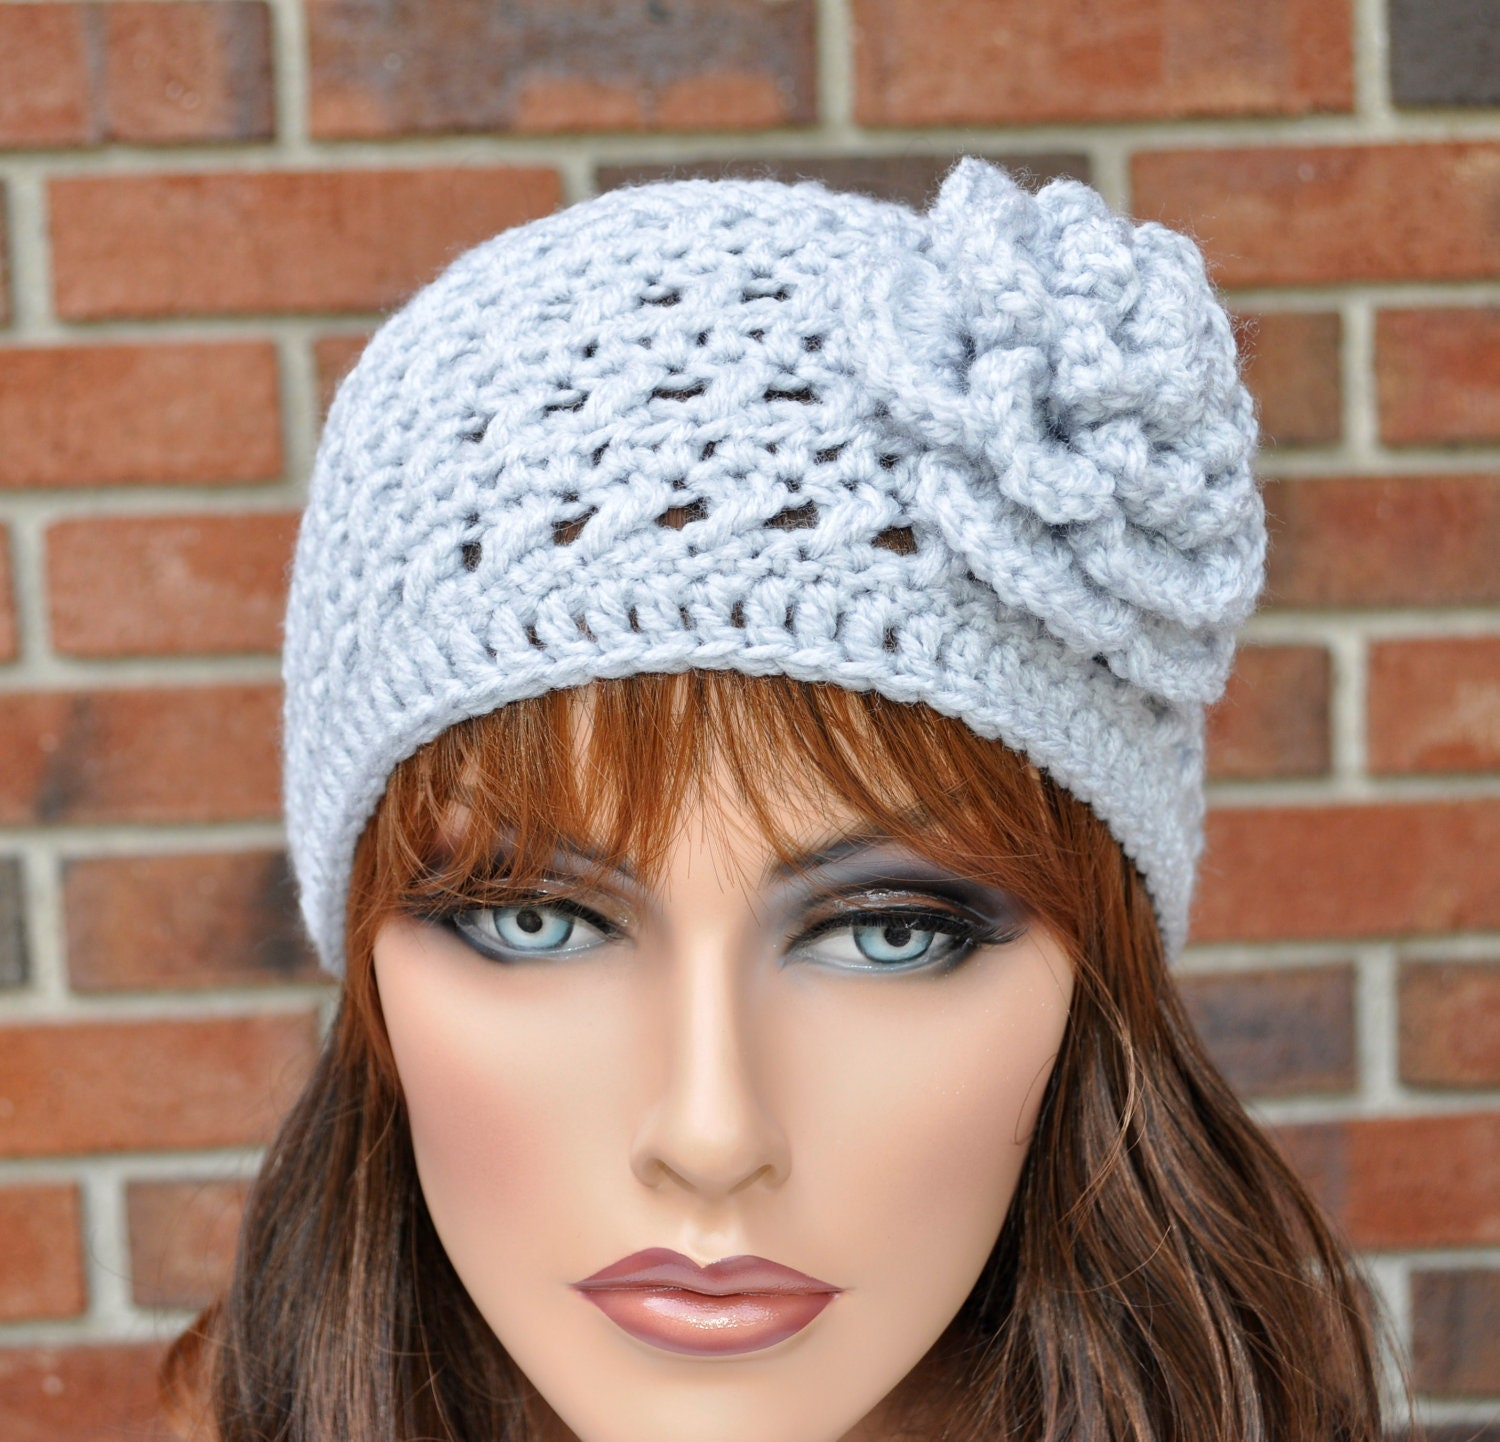 Free Crochet Pattern Headband Ear Warmer Button : Items similar to Extra wide Crochet Headband Ear Warmer ...